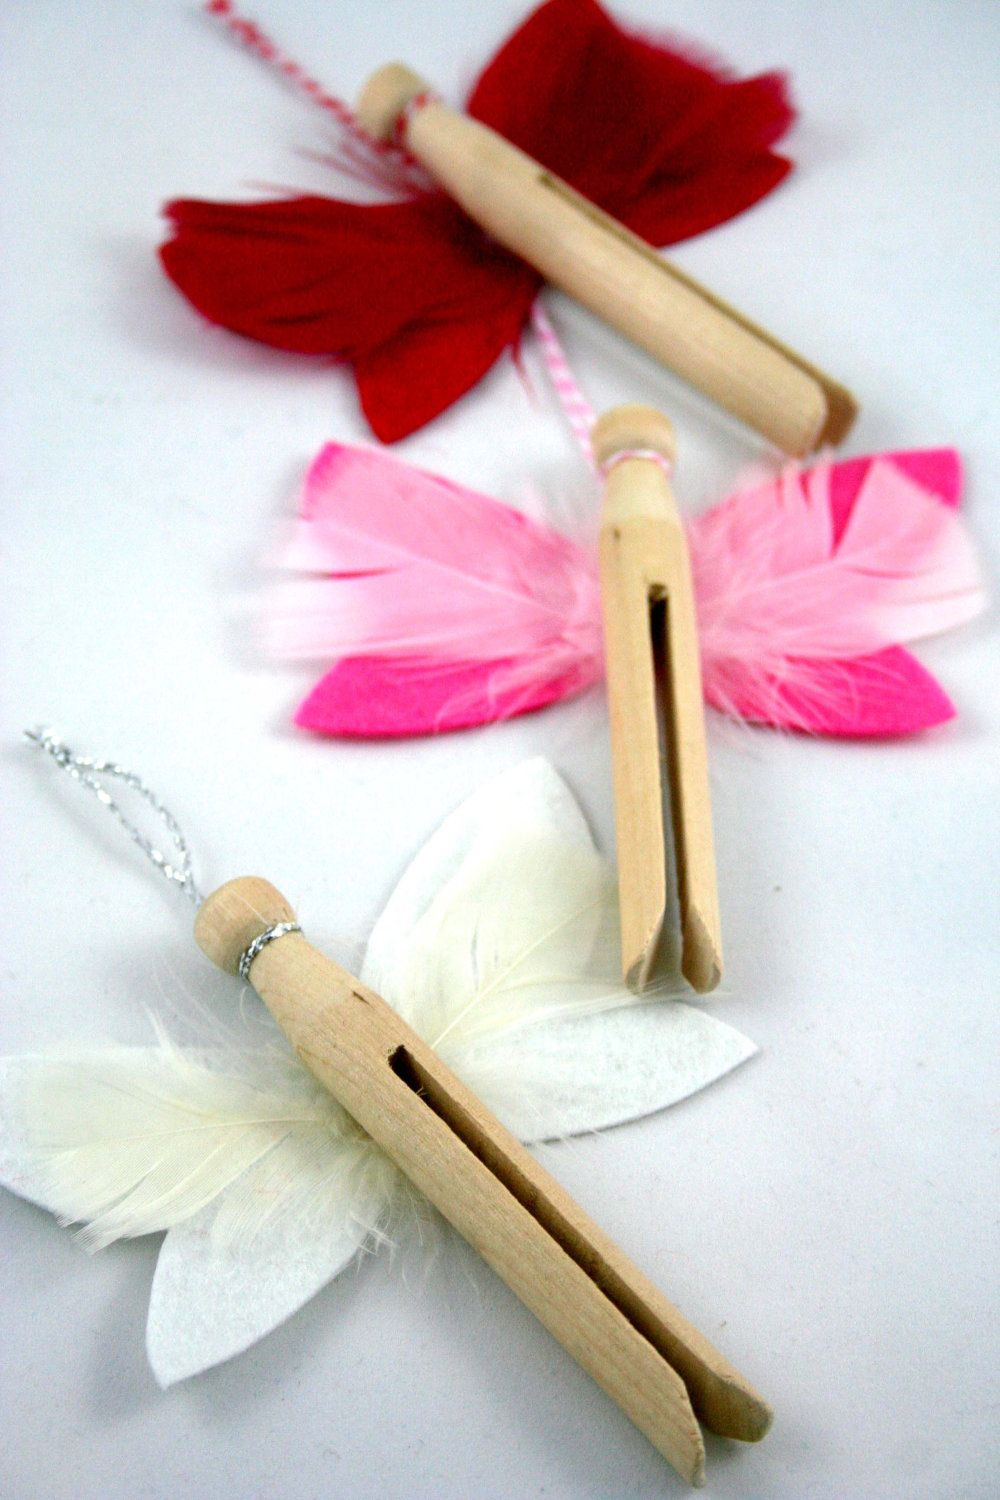 Or sleeping bags clothes pegs optional fairy lights optional - Xmas Dolly Peg Angel Decorations 2 50 Via Etsy